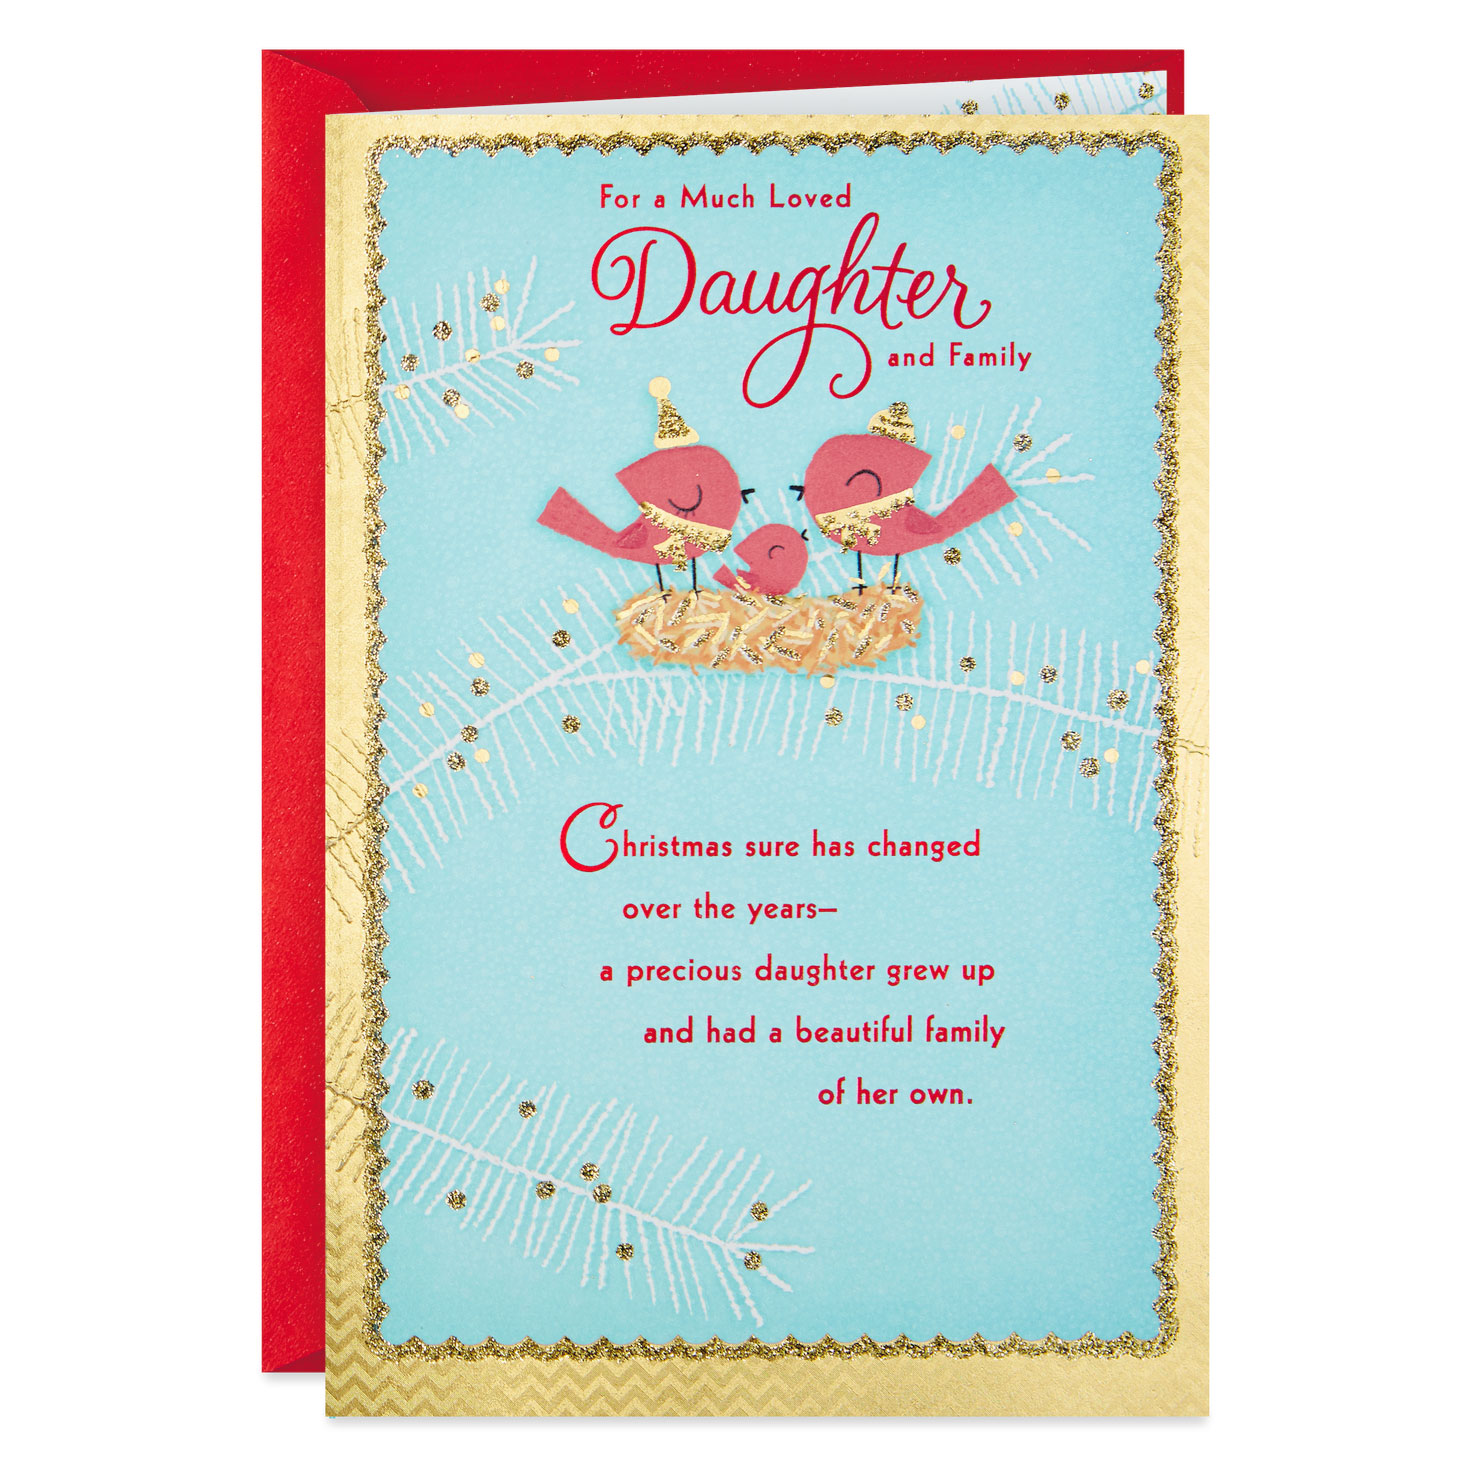 blessings of god religious christmas card for daughter and